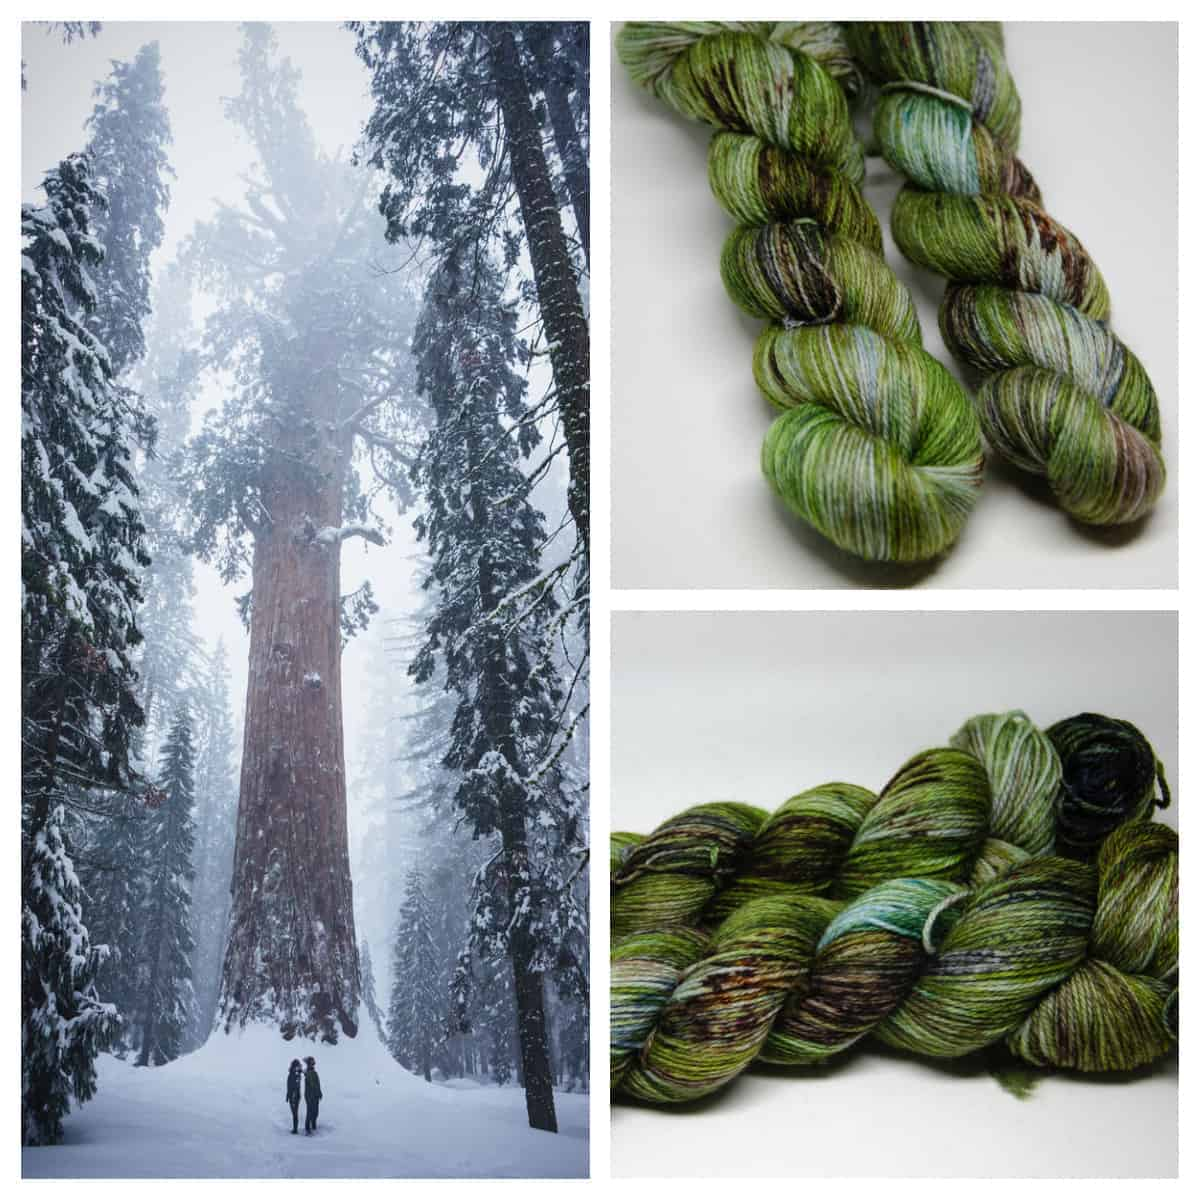 A snowy forest and green yarn.